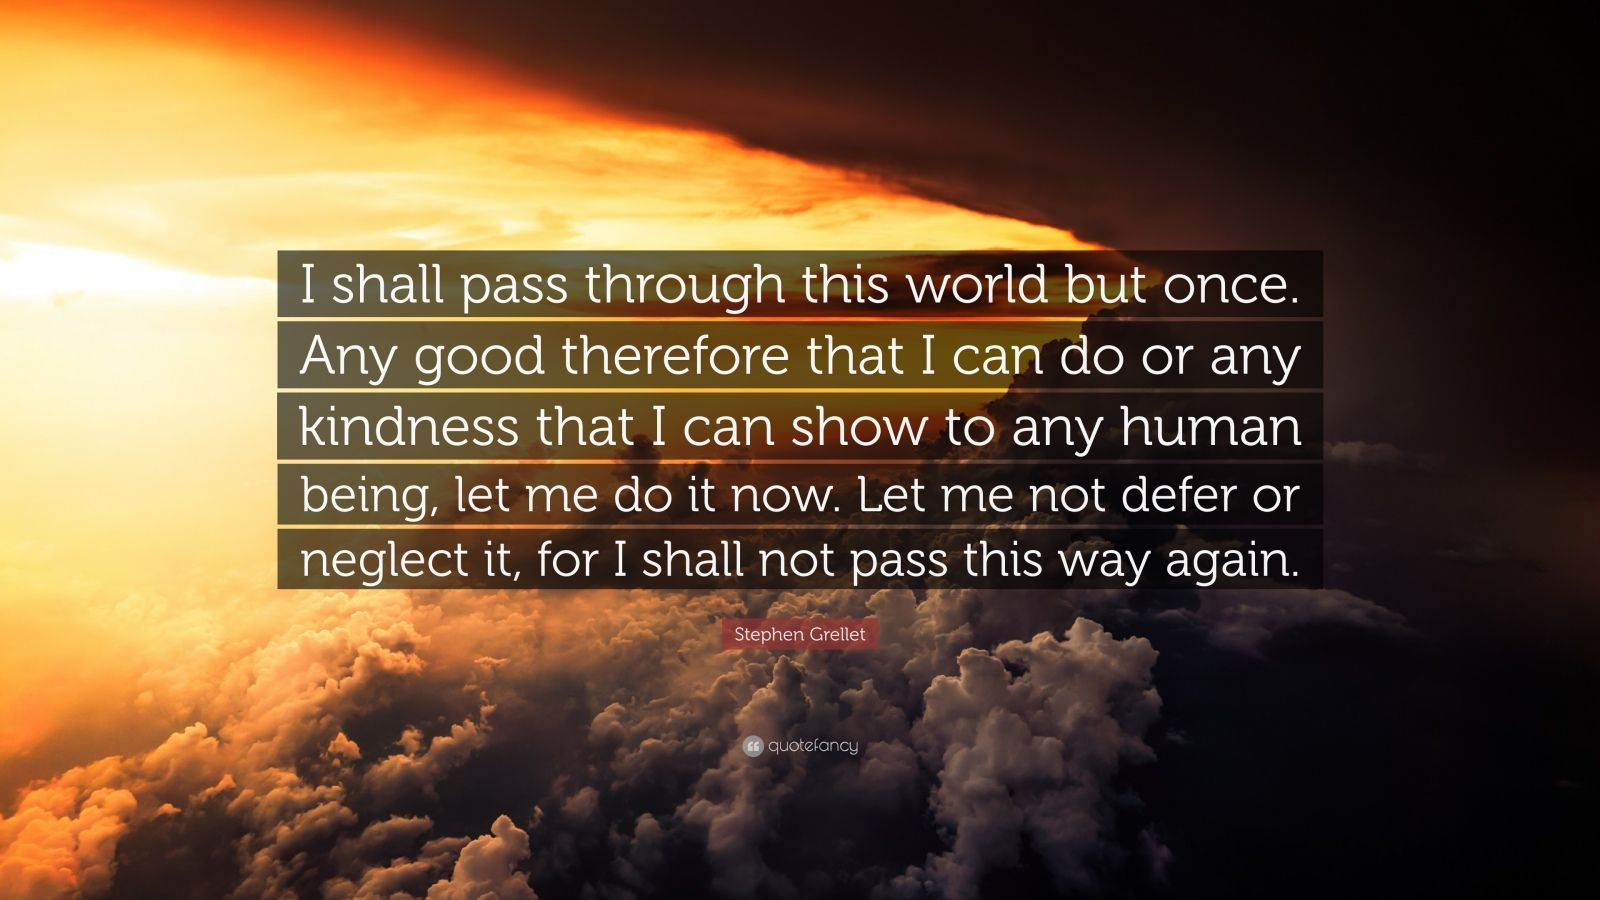 Dream Wallpaper Quotes Stephen Grellet Quote I Shall Pass Through This World